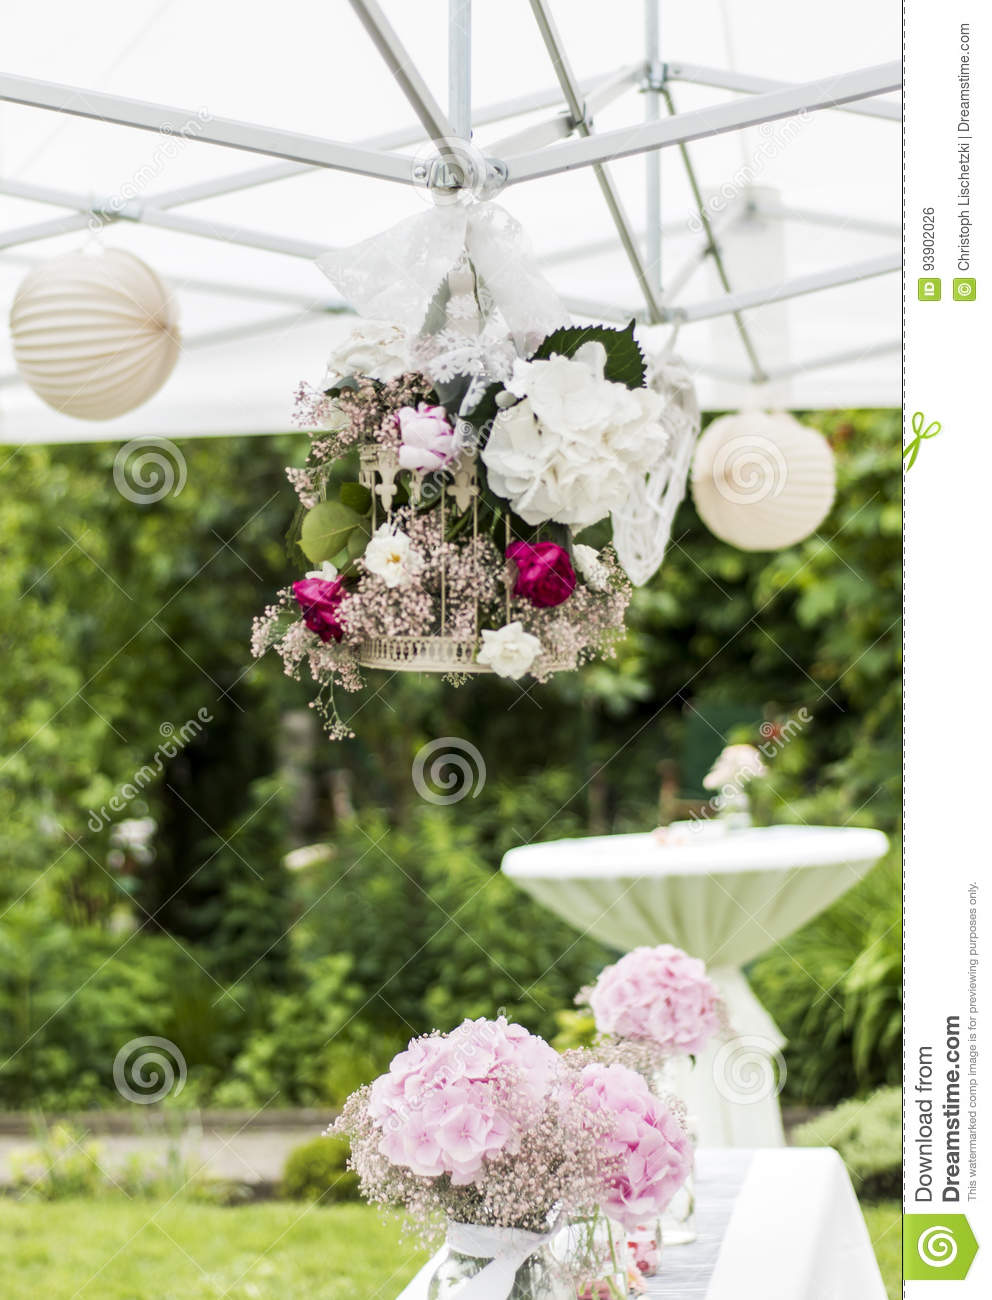 Flowers settings decoration outdoor setup for wedding with pink flowers settings decoration outdoor setup for wedding with pink colored flower mightylinksfo